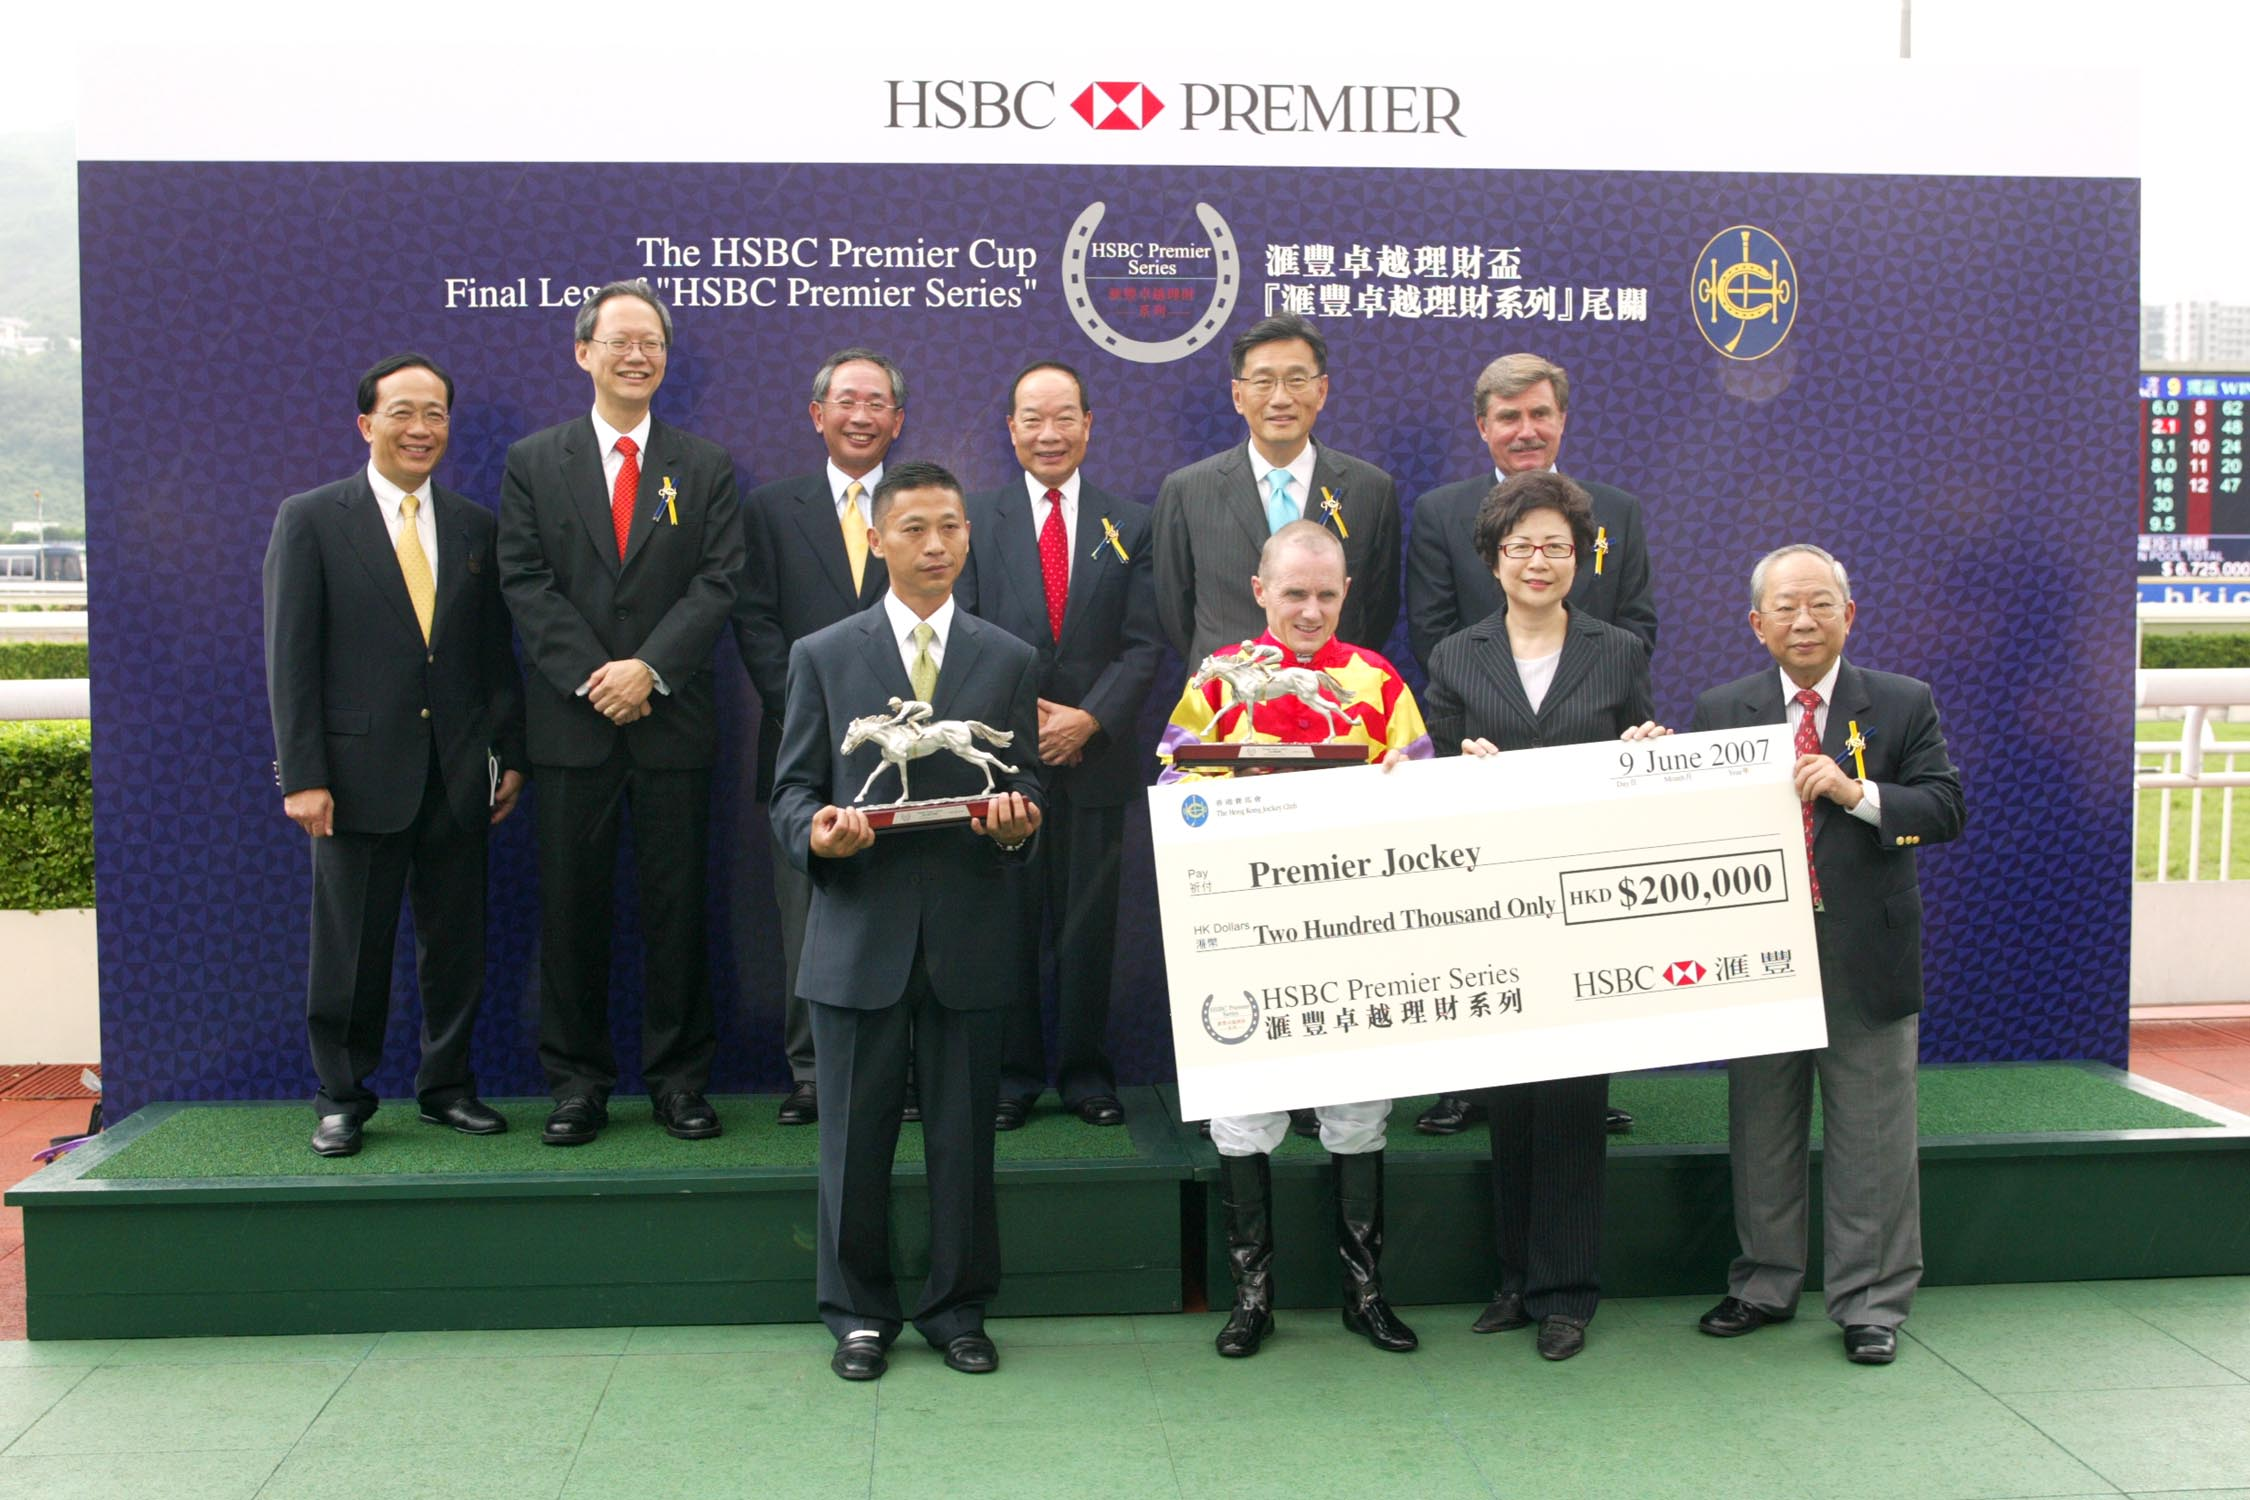 Photo Release - The HSBC Premier Series finale - Racing News - Horse Racing  - The Hong Kong Jockey Club c473f97932a